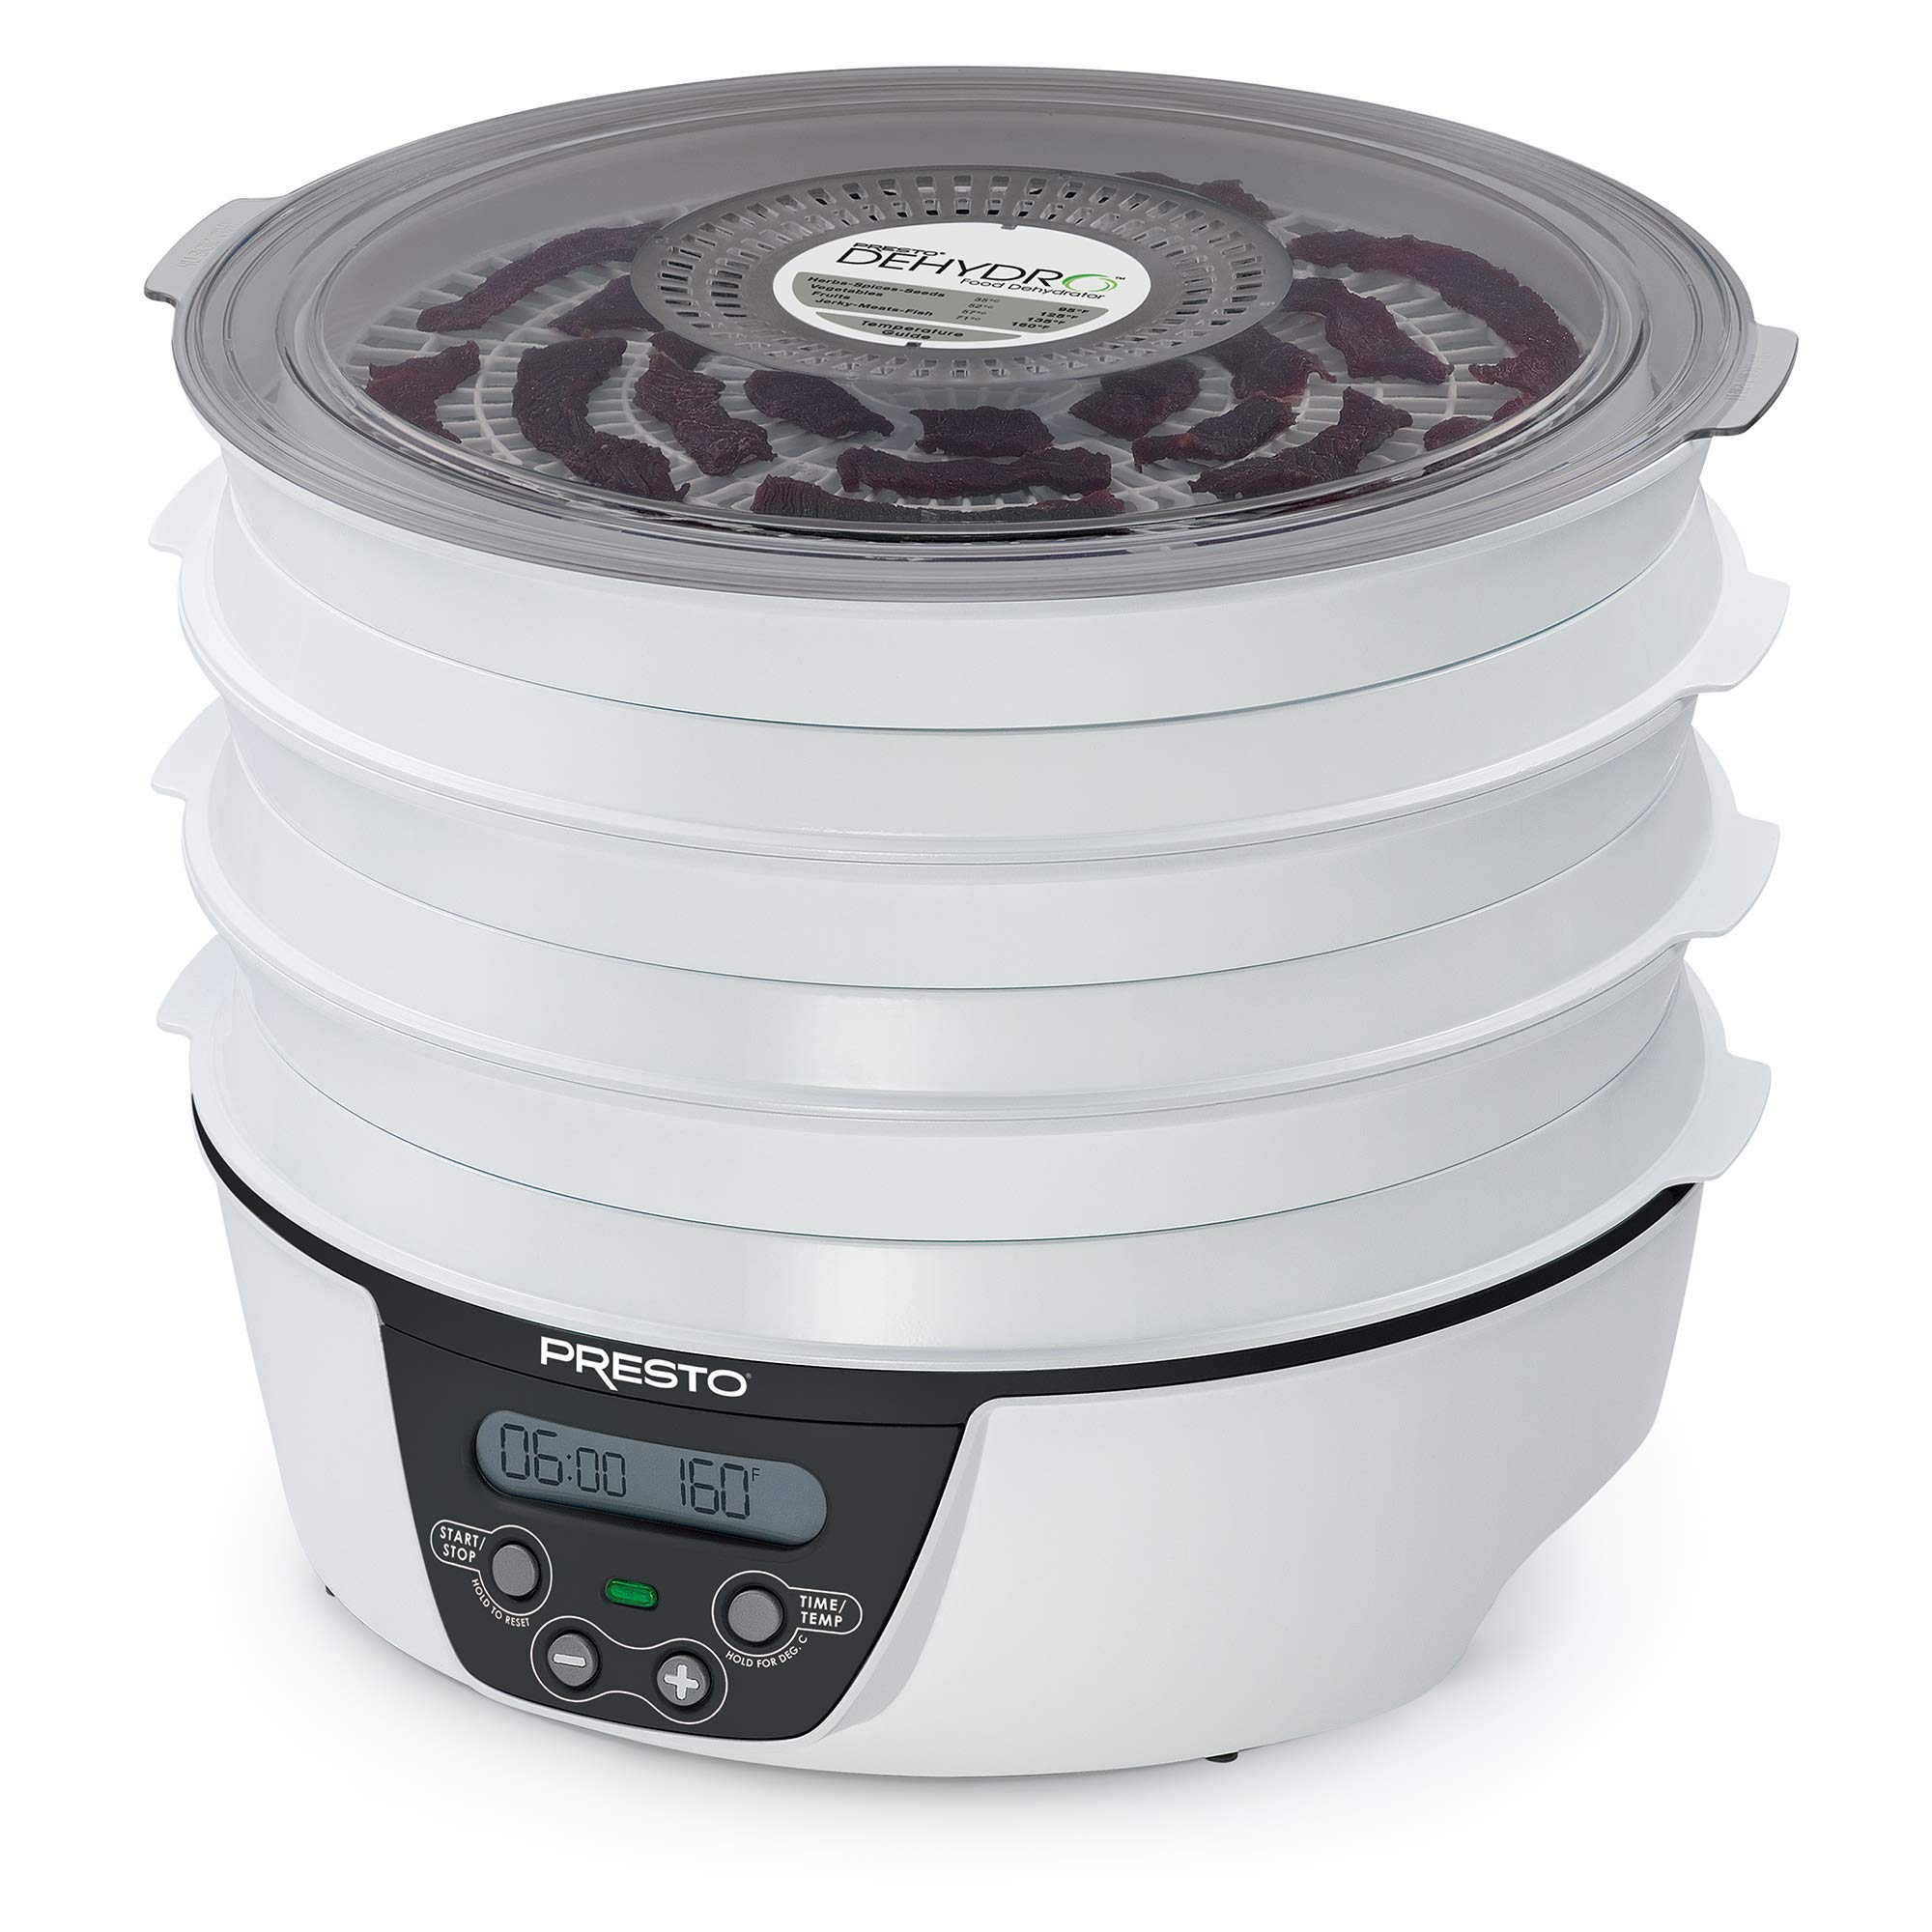 Presto 06303 Dehydro Electric Food Dehydrator, 6 trays, White and Black